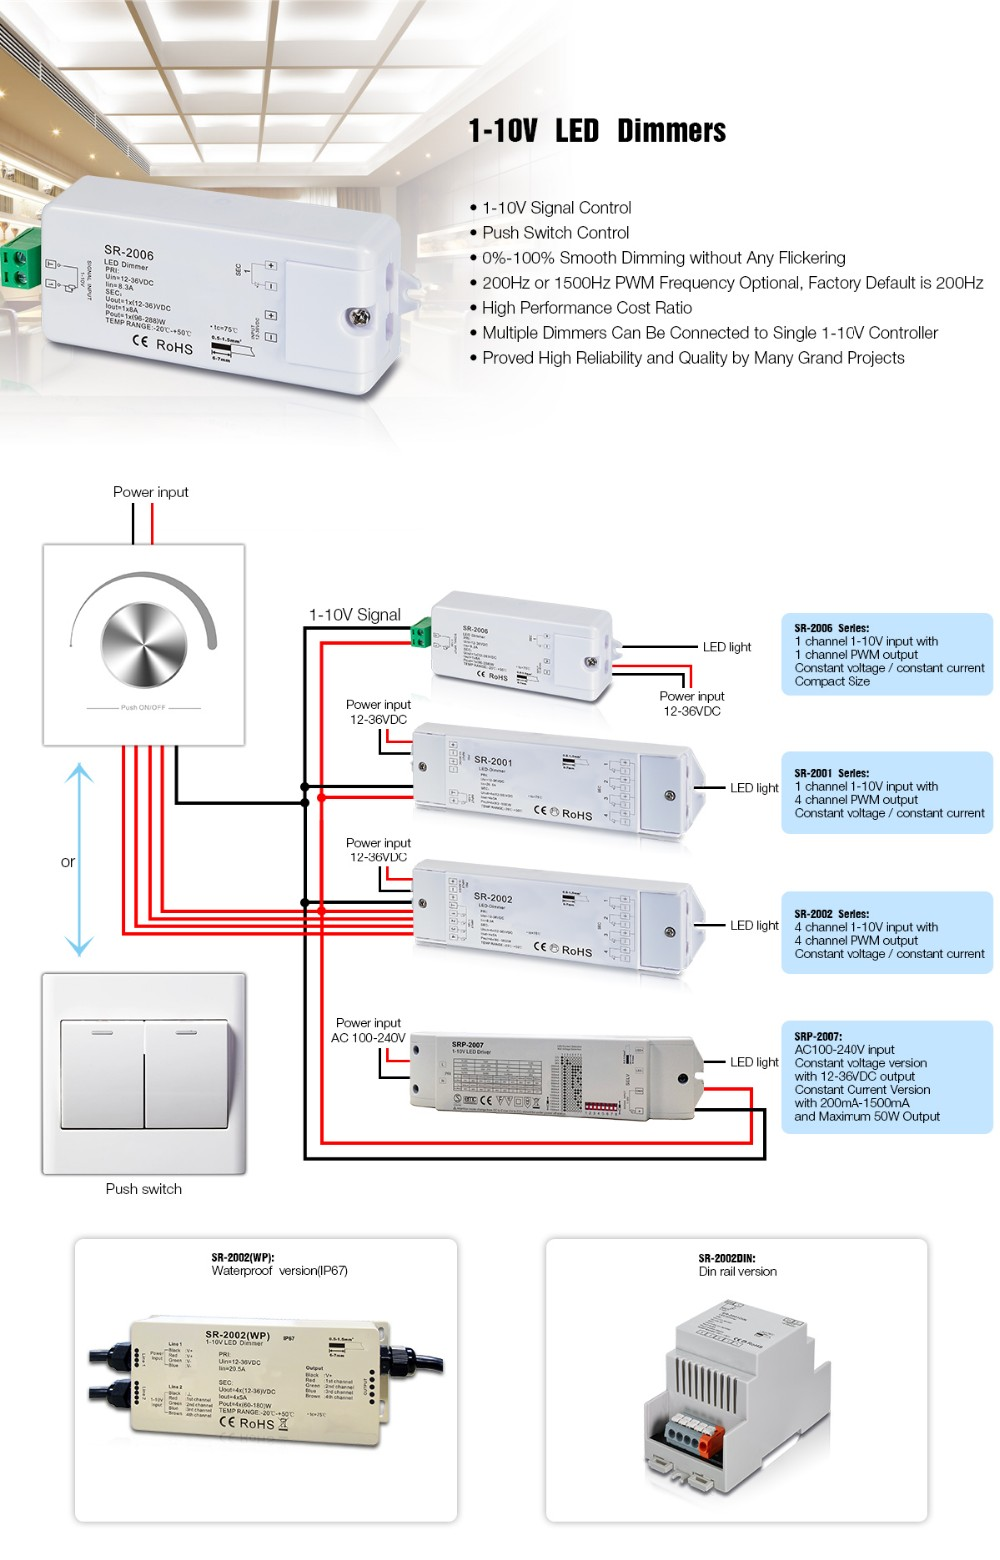 4 Channel 0//1-10V LED Dimming Controller 4CH 5A//CH Smooth Dimming without any flickering 12-36VDC